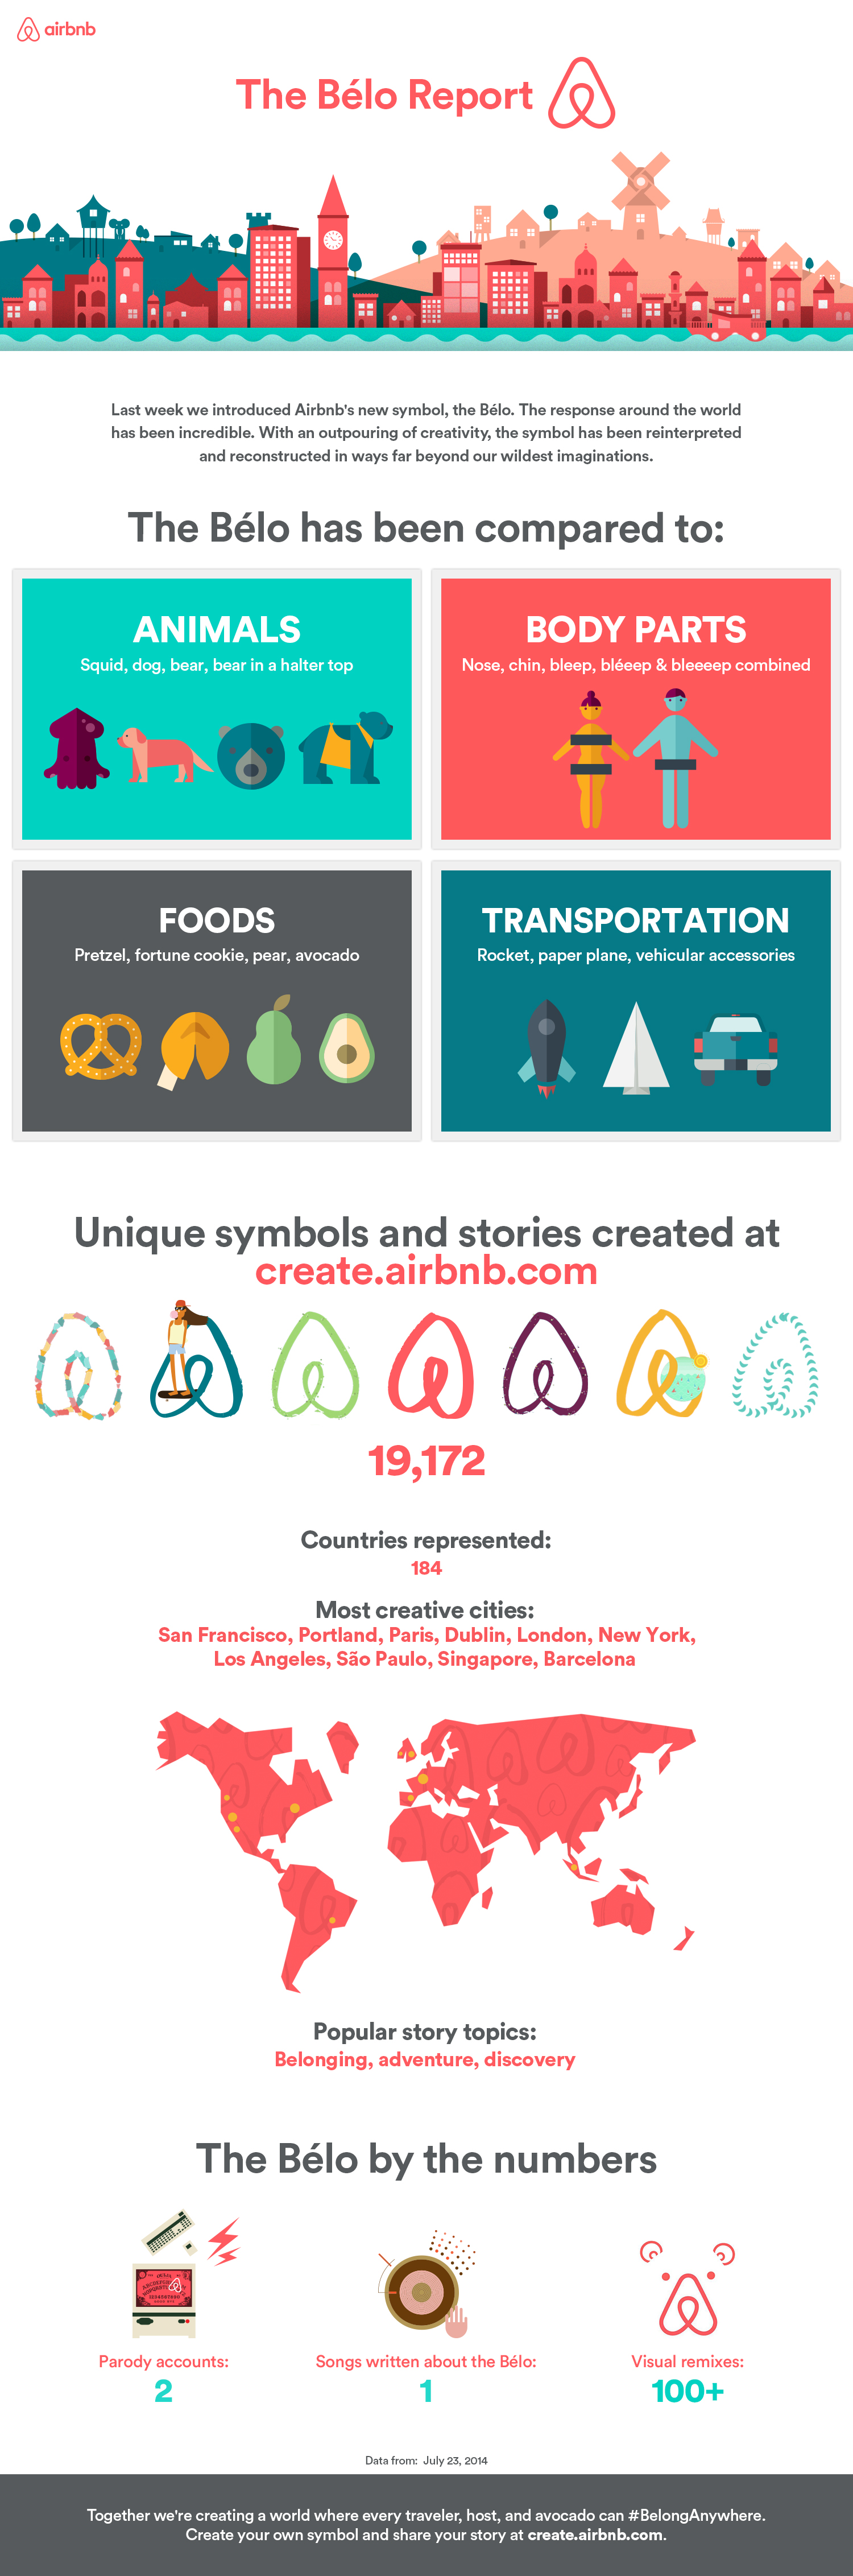 The Blo Report An Infographic On The New Airbnb Symbol The